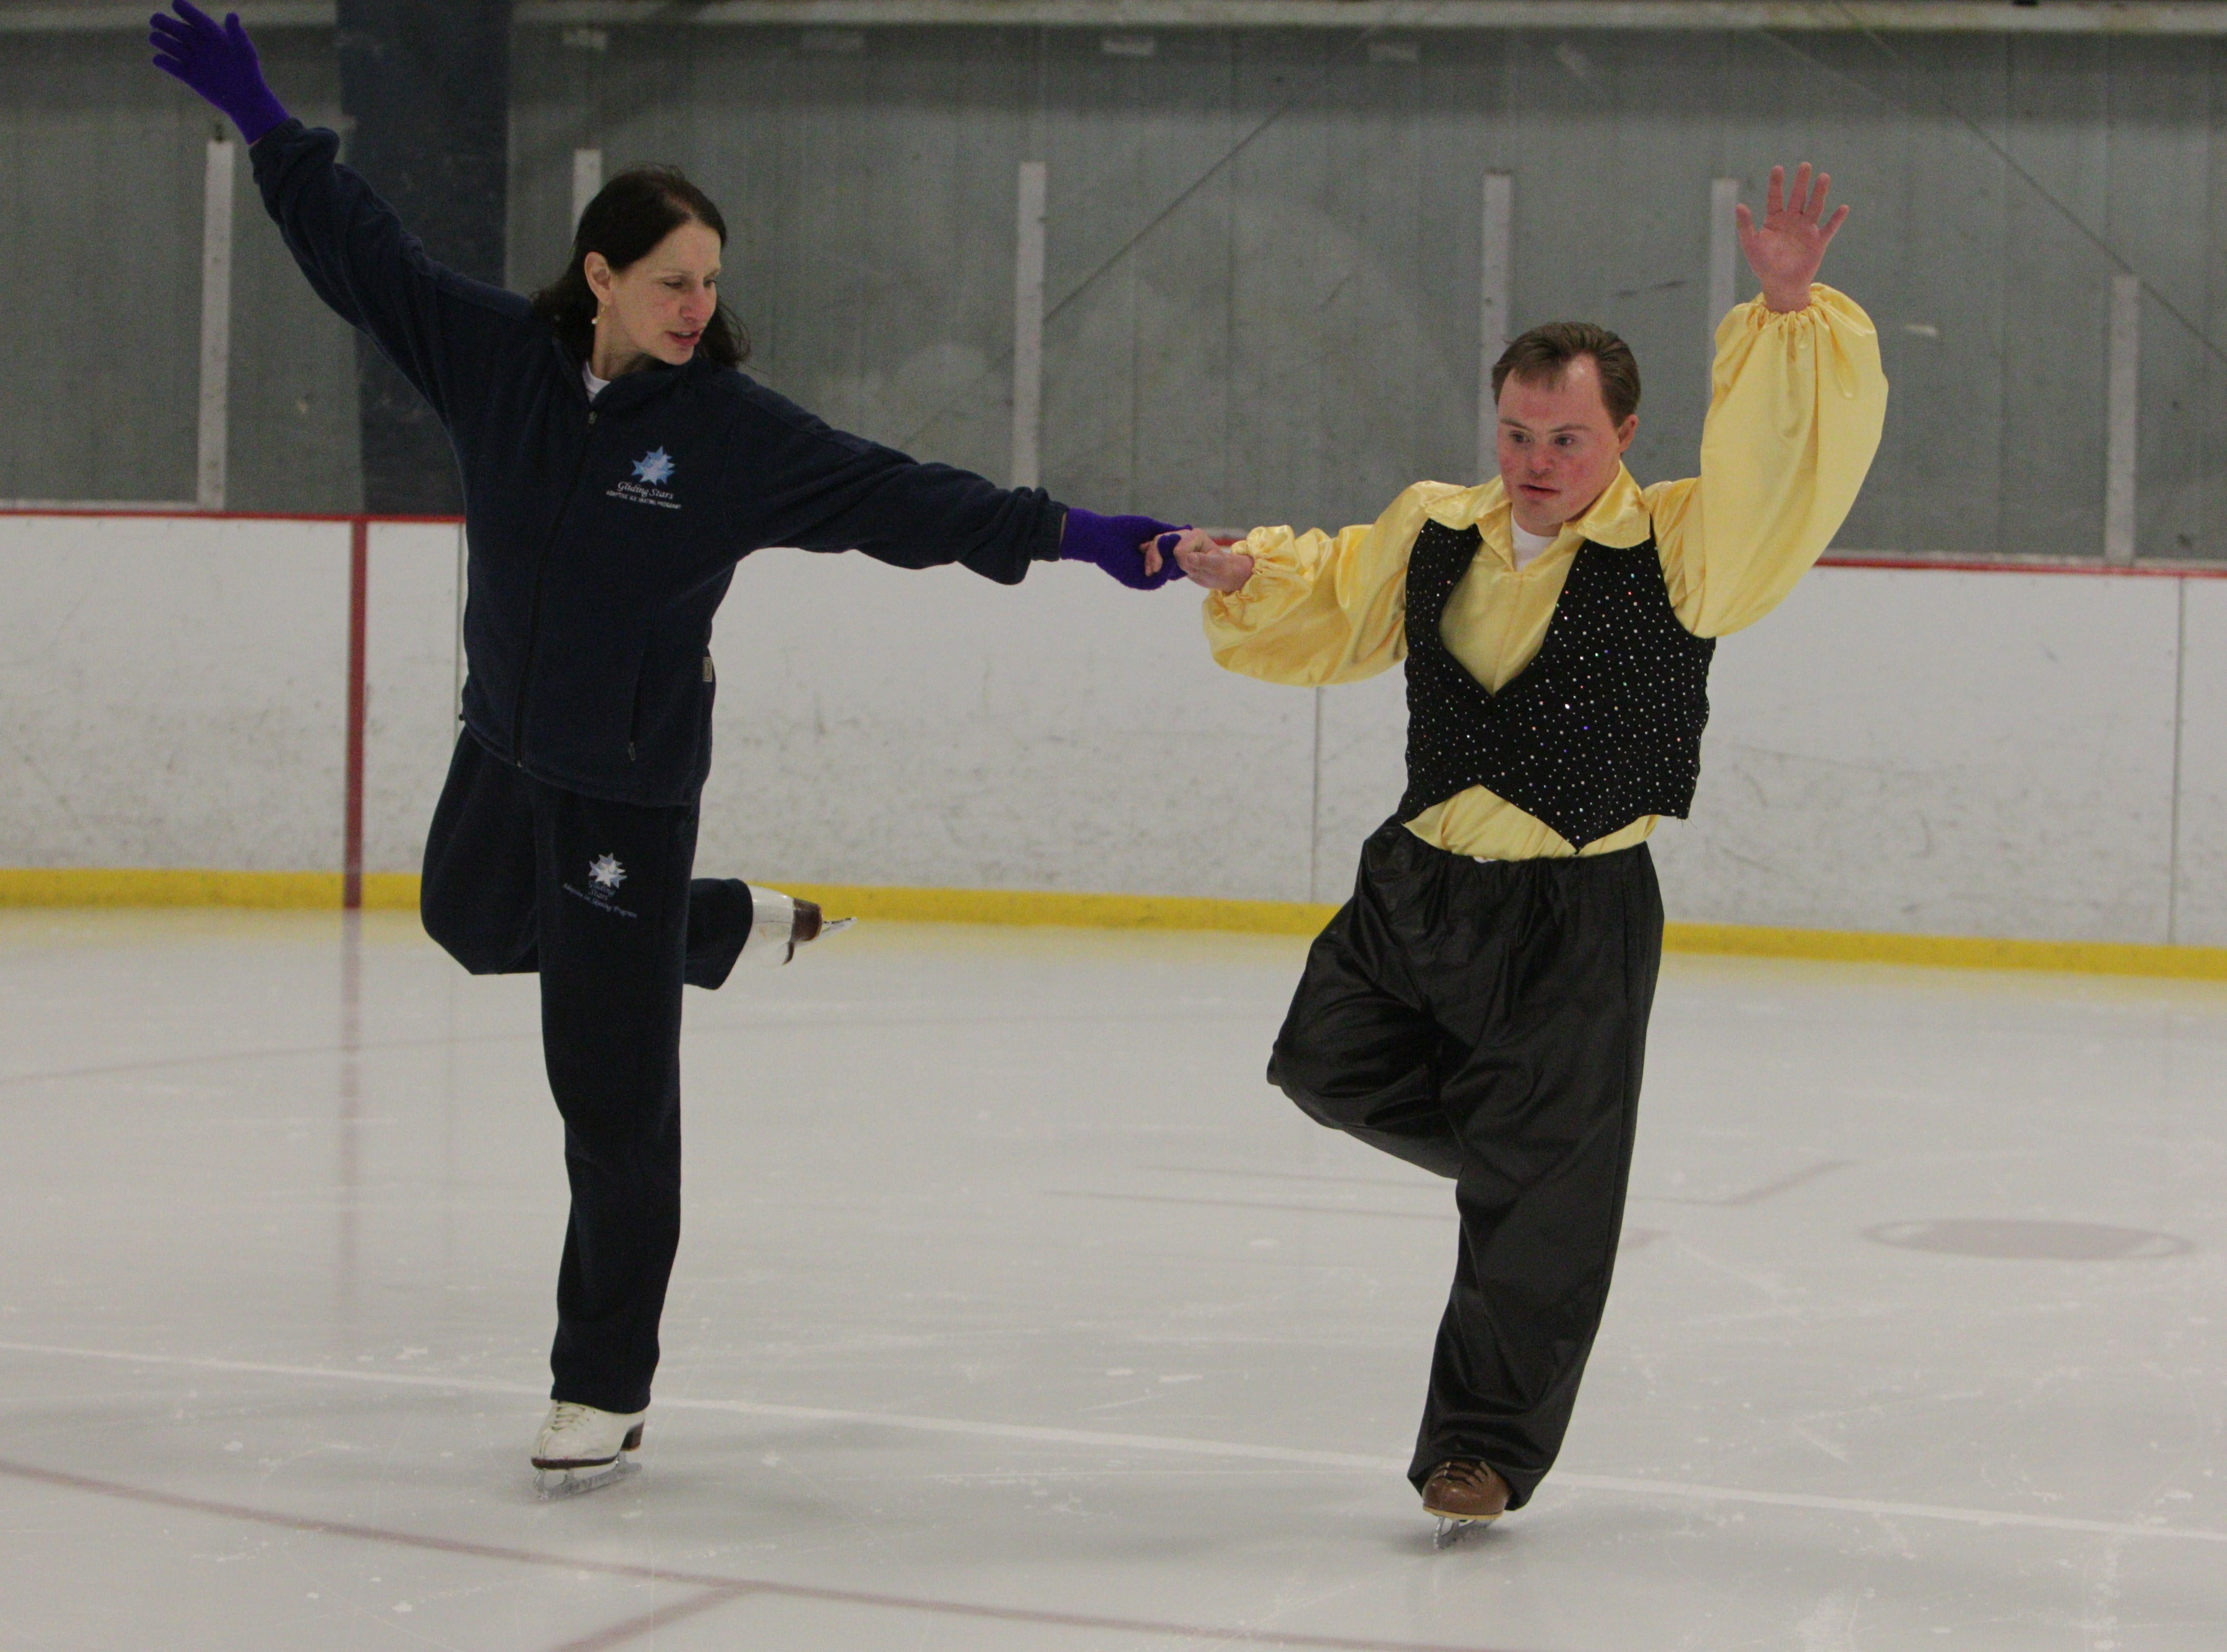 Alex May skates with Gliding Stars director and founder Elizabeth O'Donnell on Sunday in Hyde Park Arena in Niagara Falls. May will perform his first solo skate at this weekend's show.